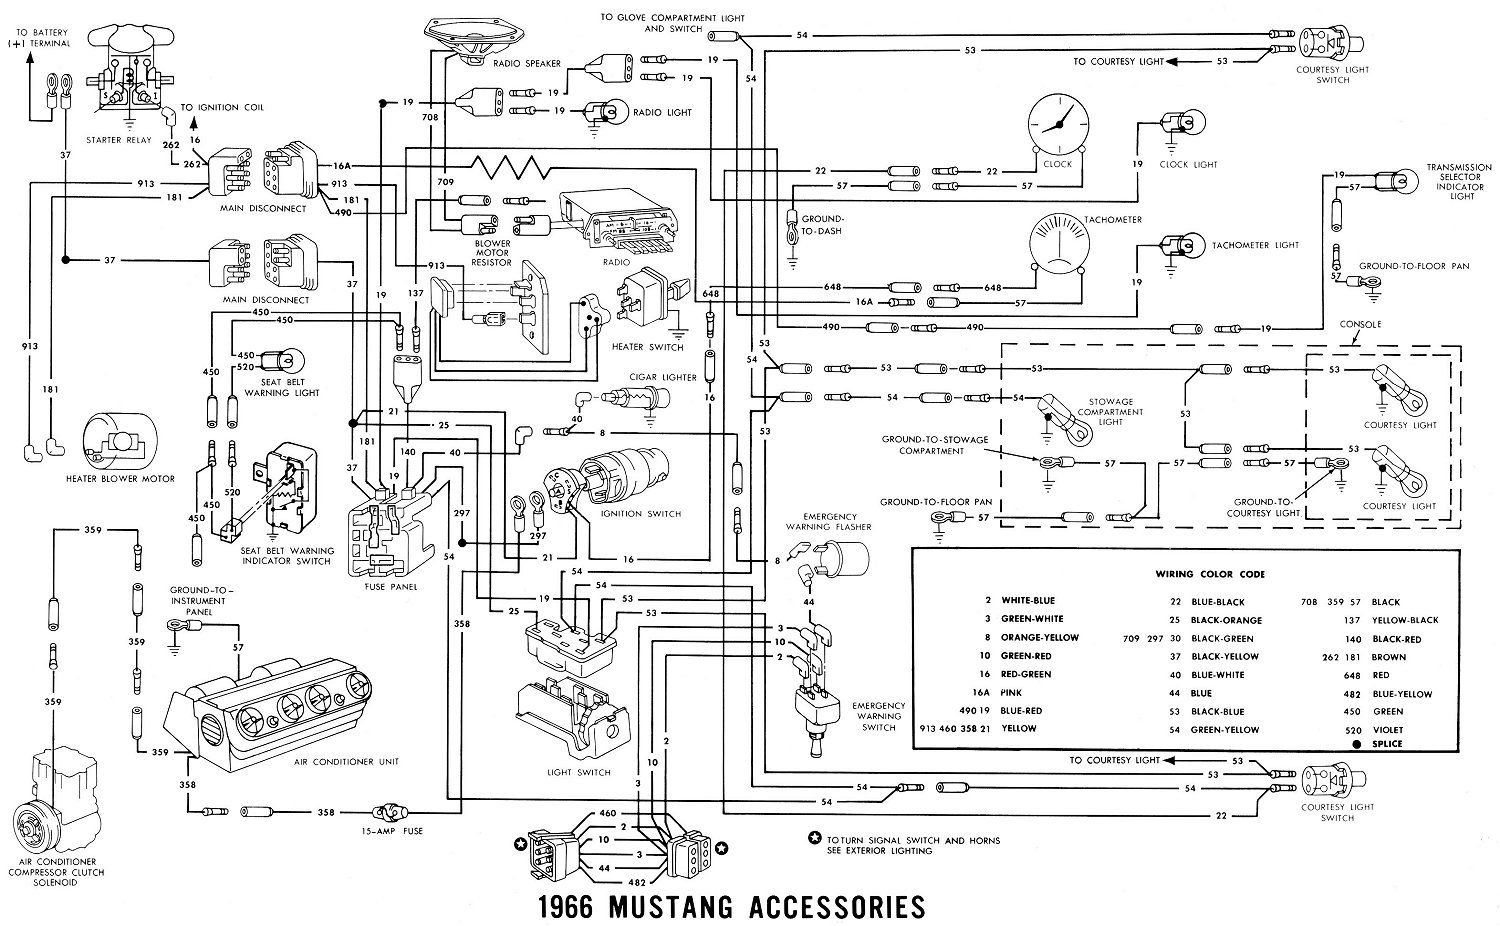 wiring diagram 1955 buick with Wiring on Showthread additionally 1993 Ford Thunderbird Wiring Diagram together with 57 Chevy Starter Wiring Diagram furthermore 1998 Chevy Truck Front Suspension Diagram likewise 1948 Dodge Biz Coupe Wiring Diagrams.